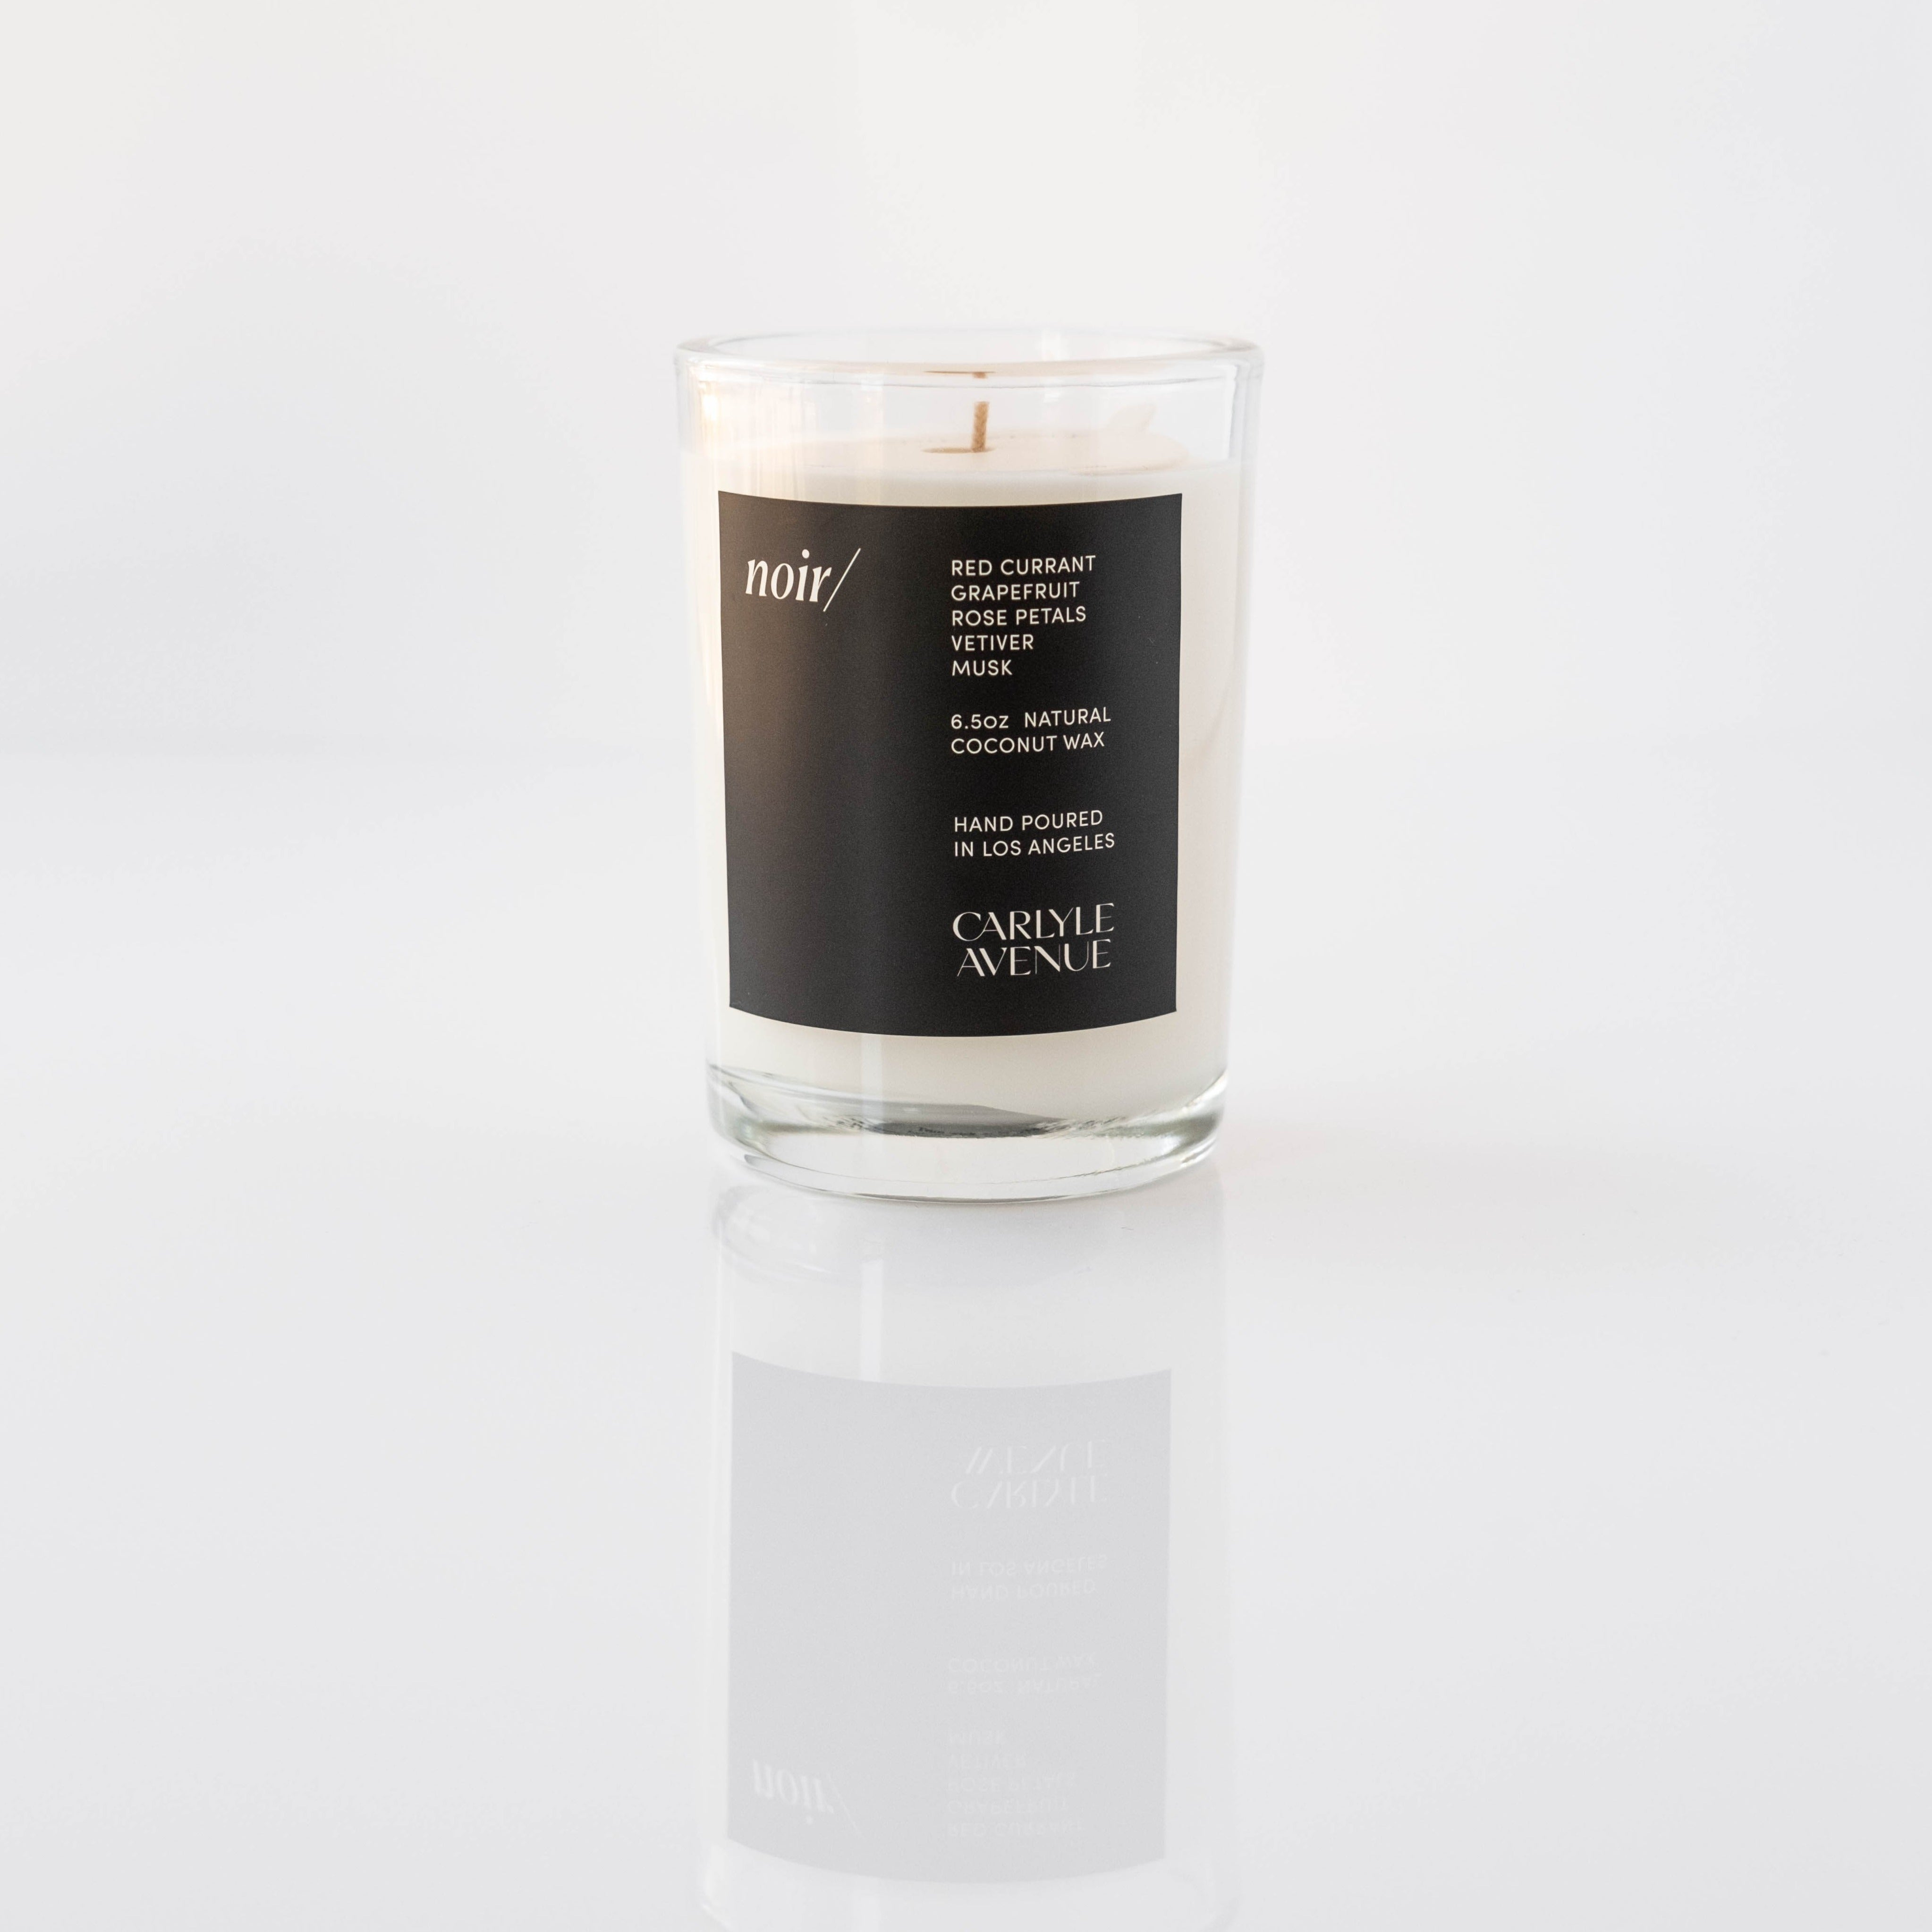 Carlyle Avenue Scented Candle - Noir